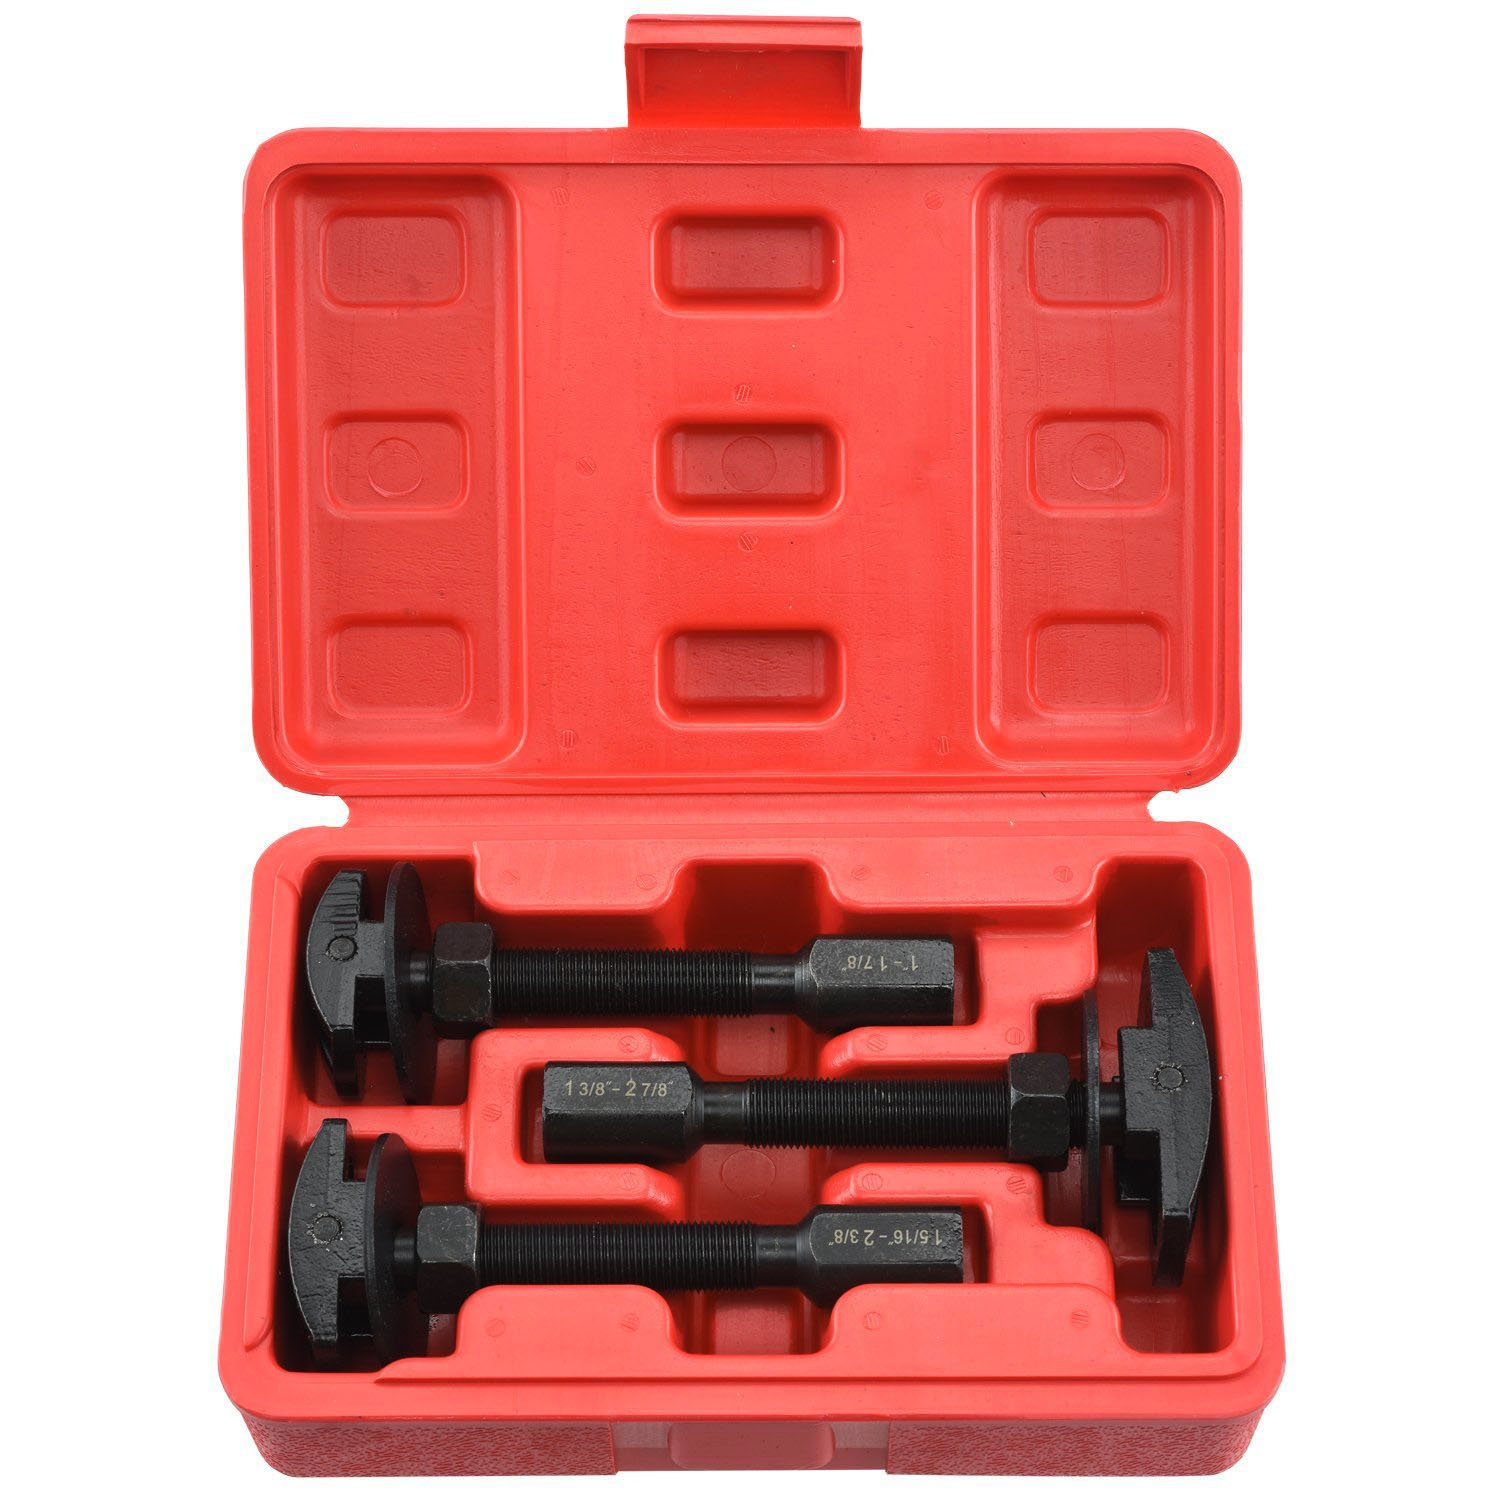 Neiko 20721A Pneumatic Rear Axle Bearing Puller Service Kit | Includes Case | 3-Piece Set